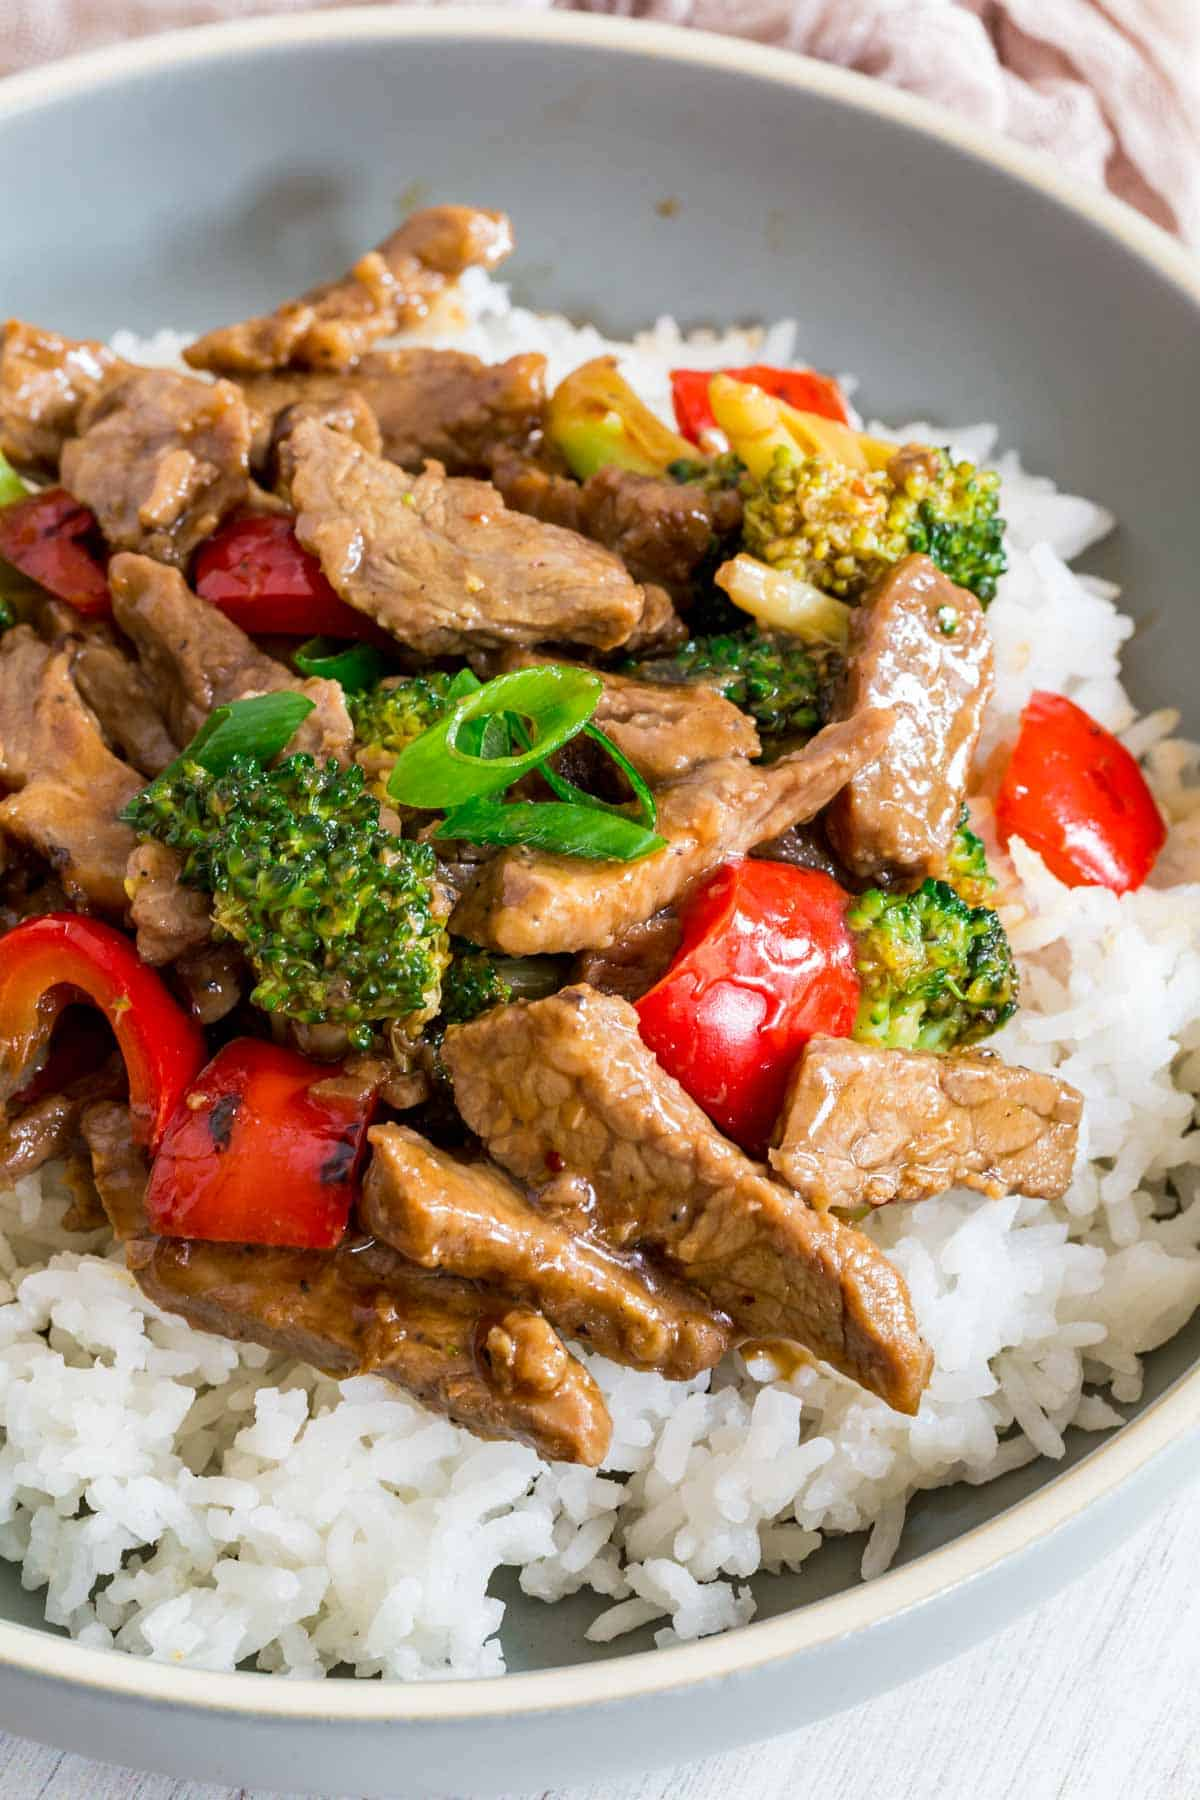 hunan beef stir fry with red peppers and broccoli over white rice in a light blue bowl